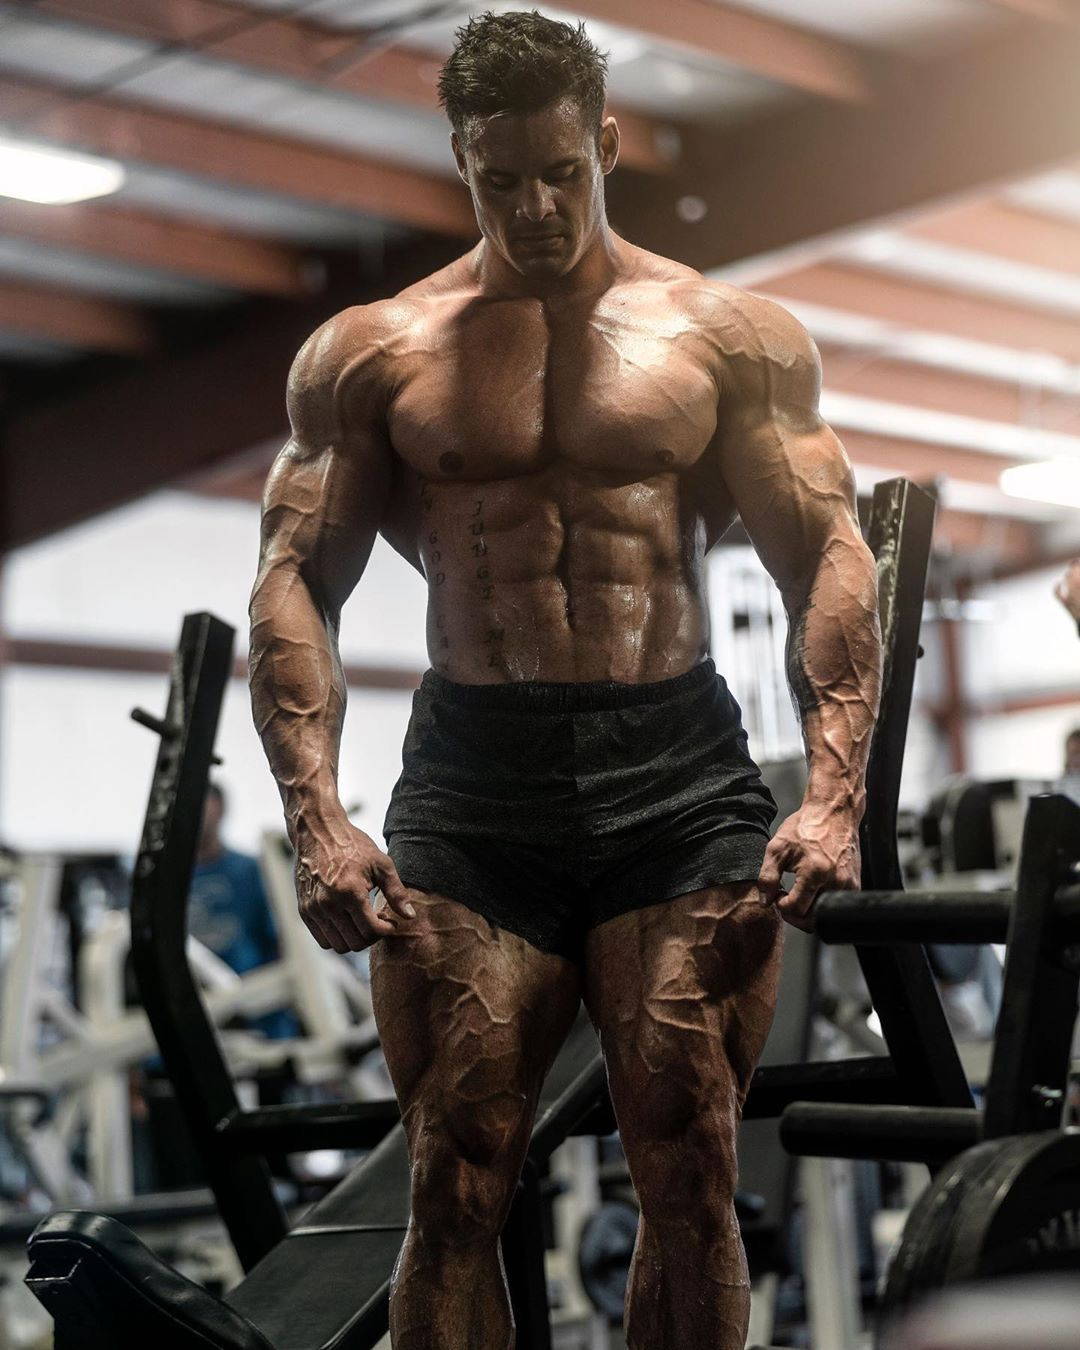 Pin By Mohd Ferhan On 6 Hot Gym Guys Fitness Motivation Inspiration Popular Workouts